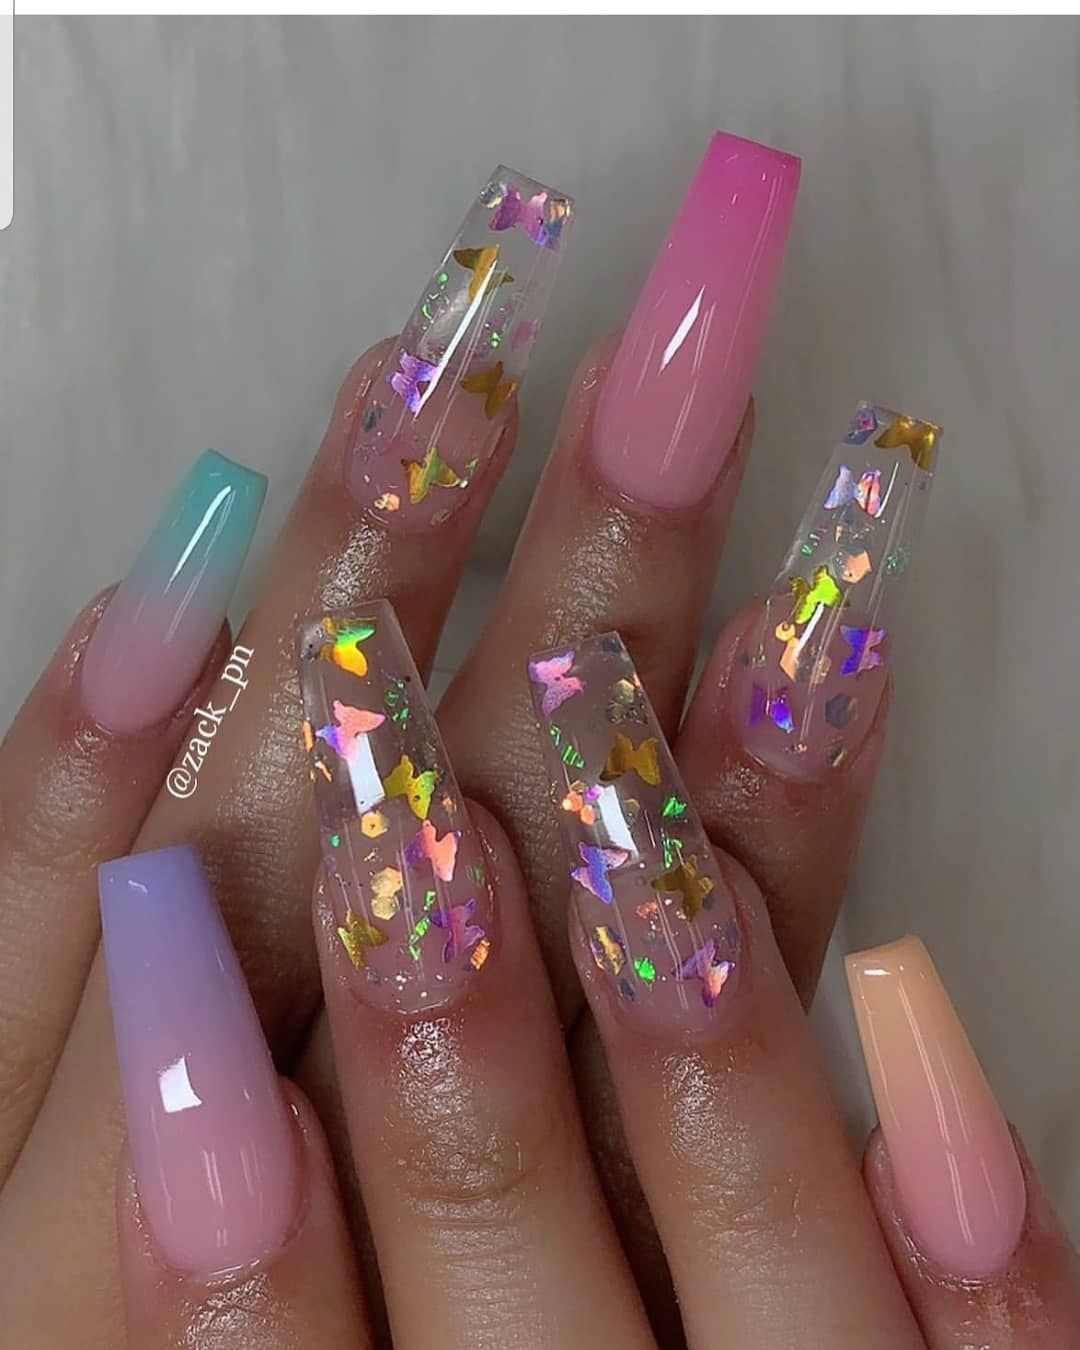 Muaannouncer On Instagram Would You Rock Beautiful Nails Yay Or Nay C Summer Acrylic Nails Best Acrylic Nails Coffin Nails Designs